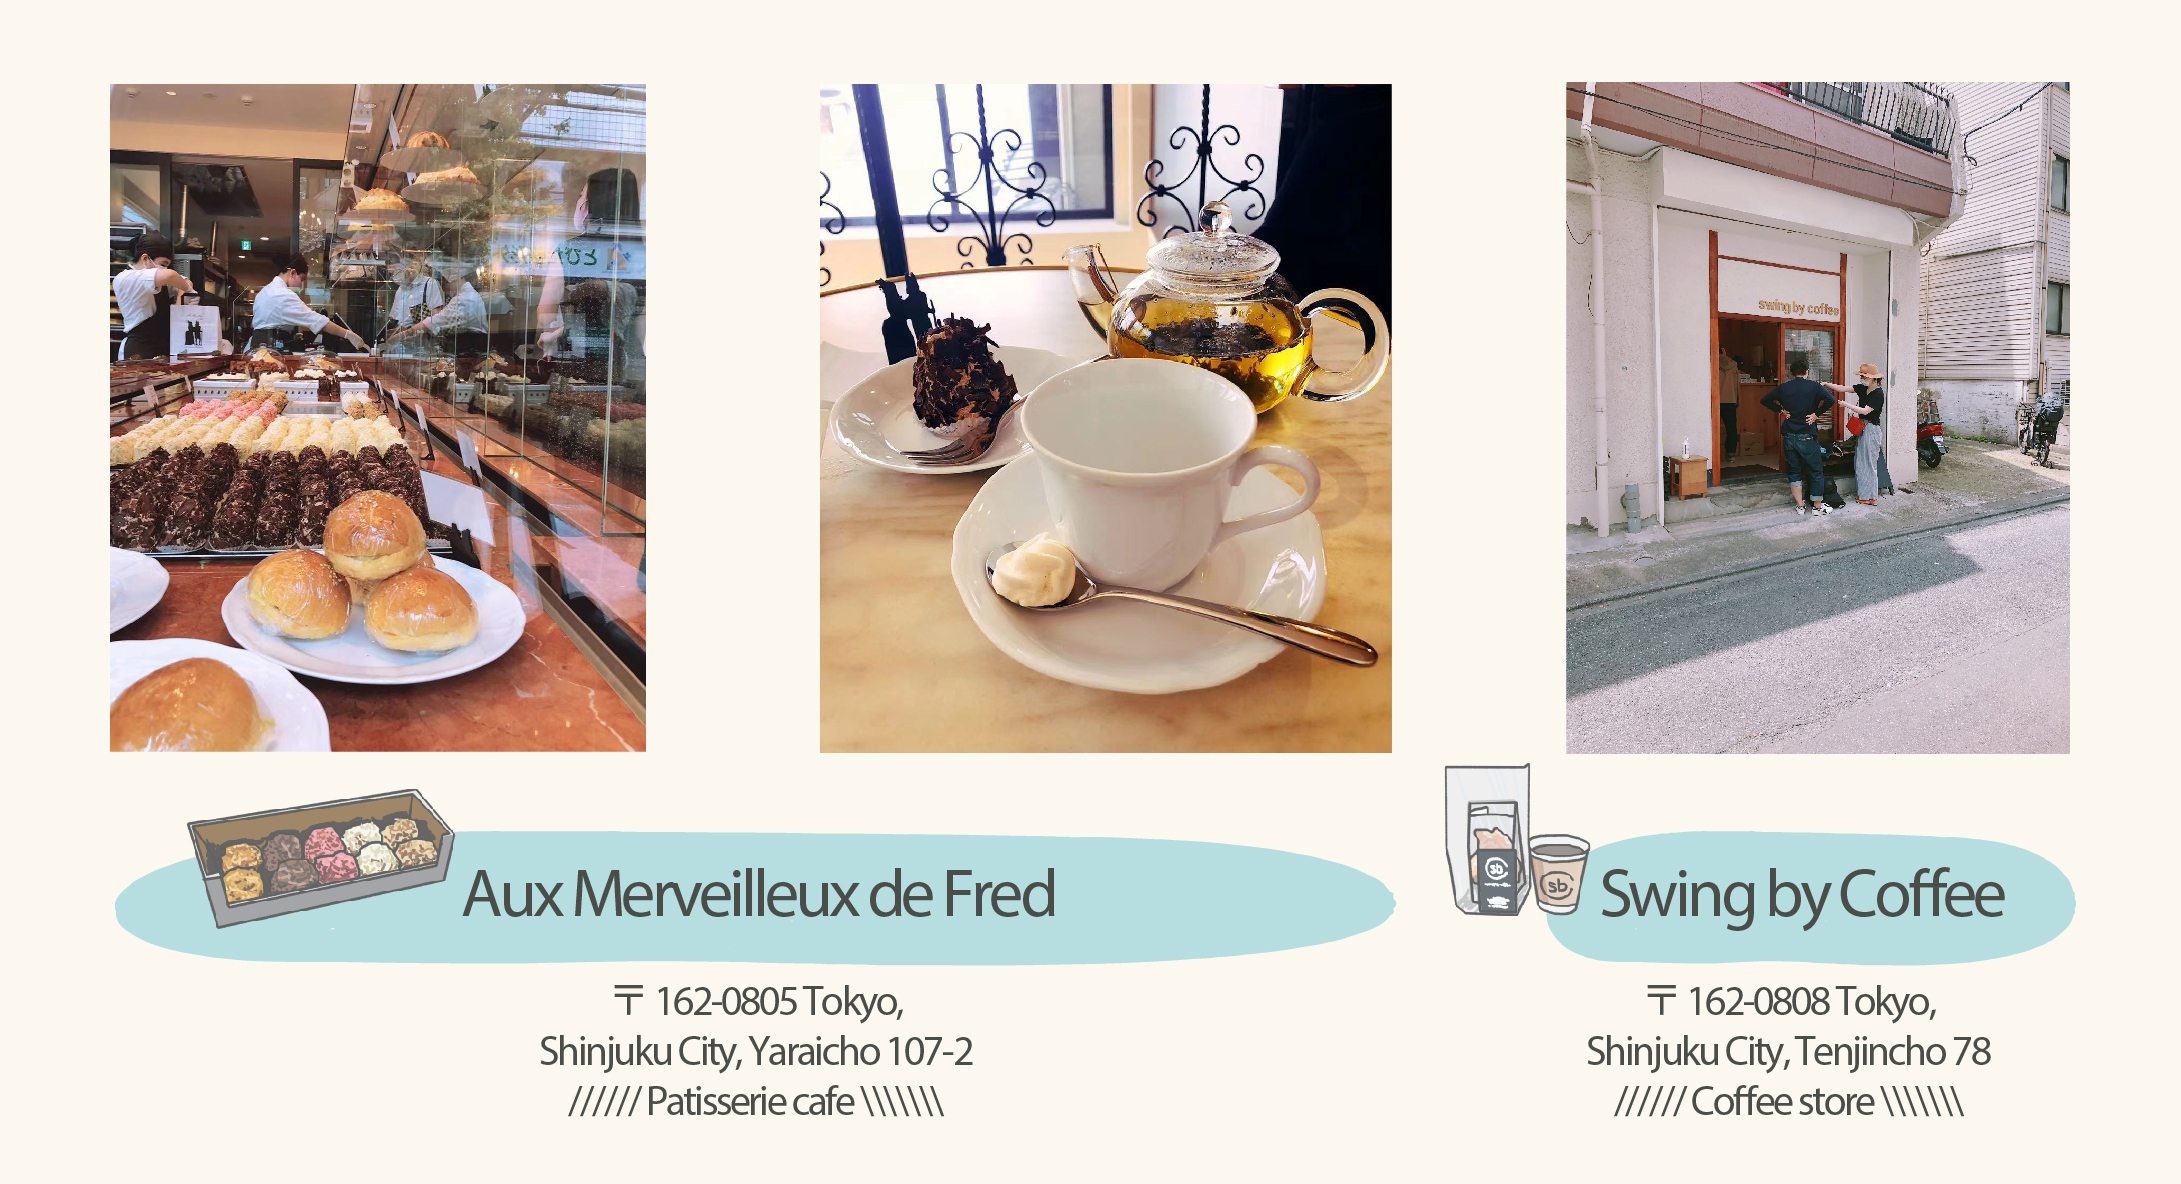 Aux Merveilleux de Fred and coffee